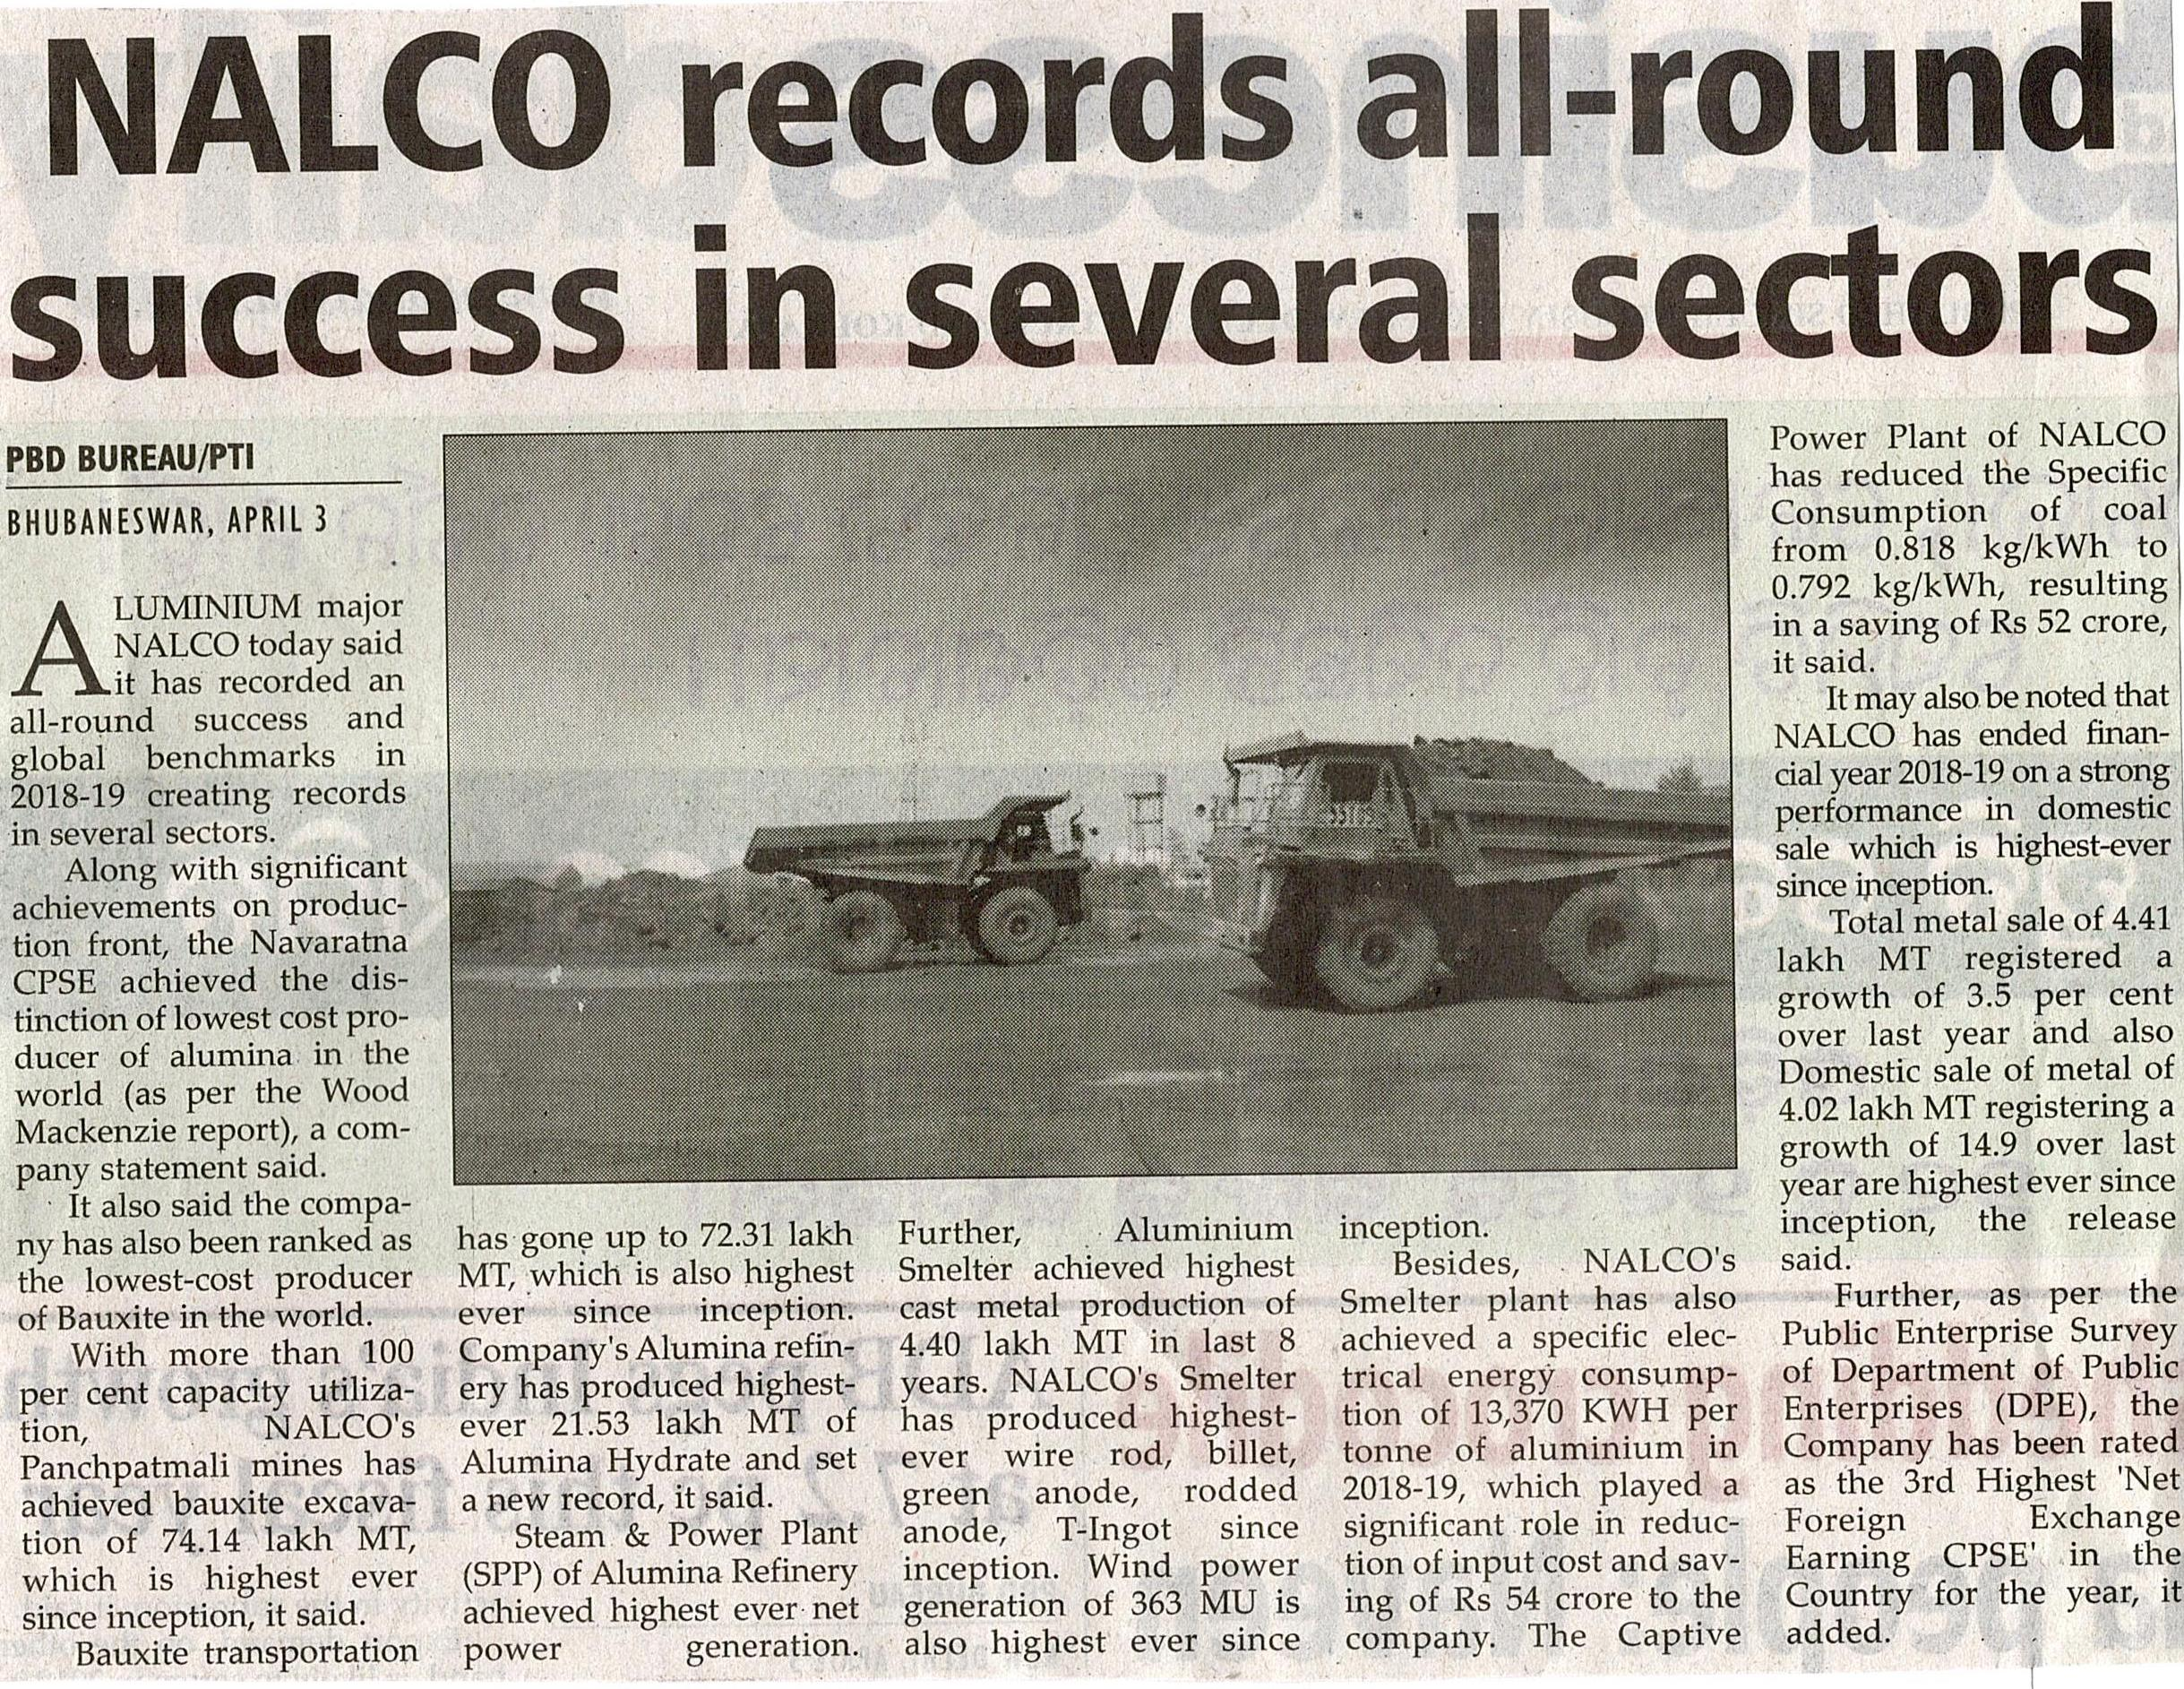 NALCO records all-round success in several sectors